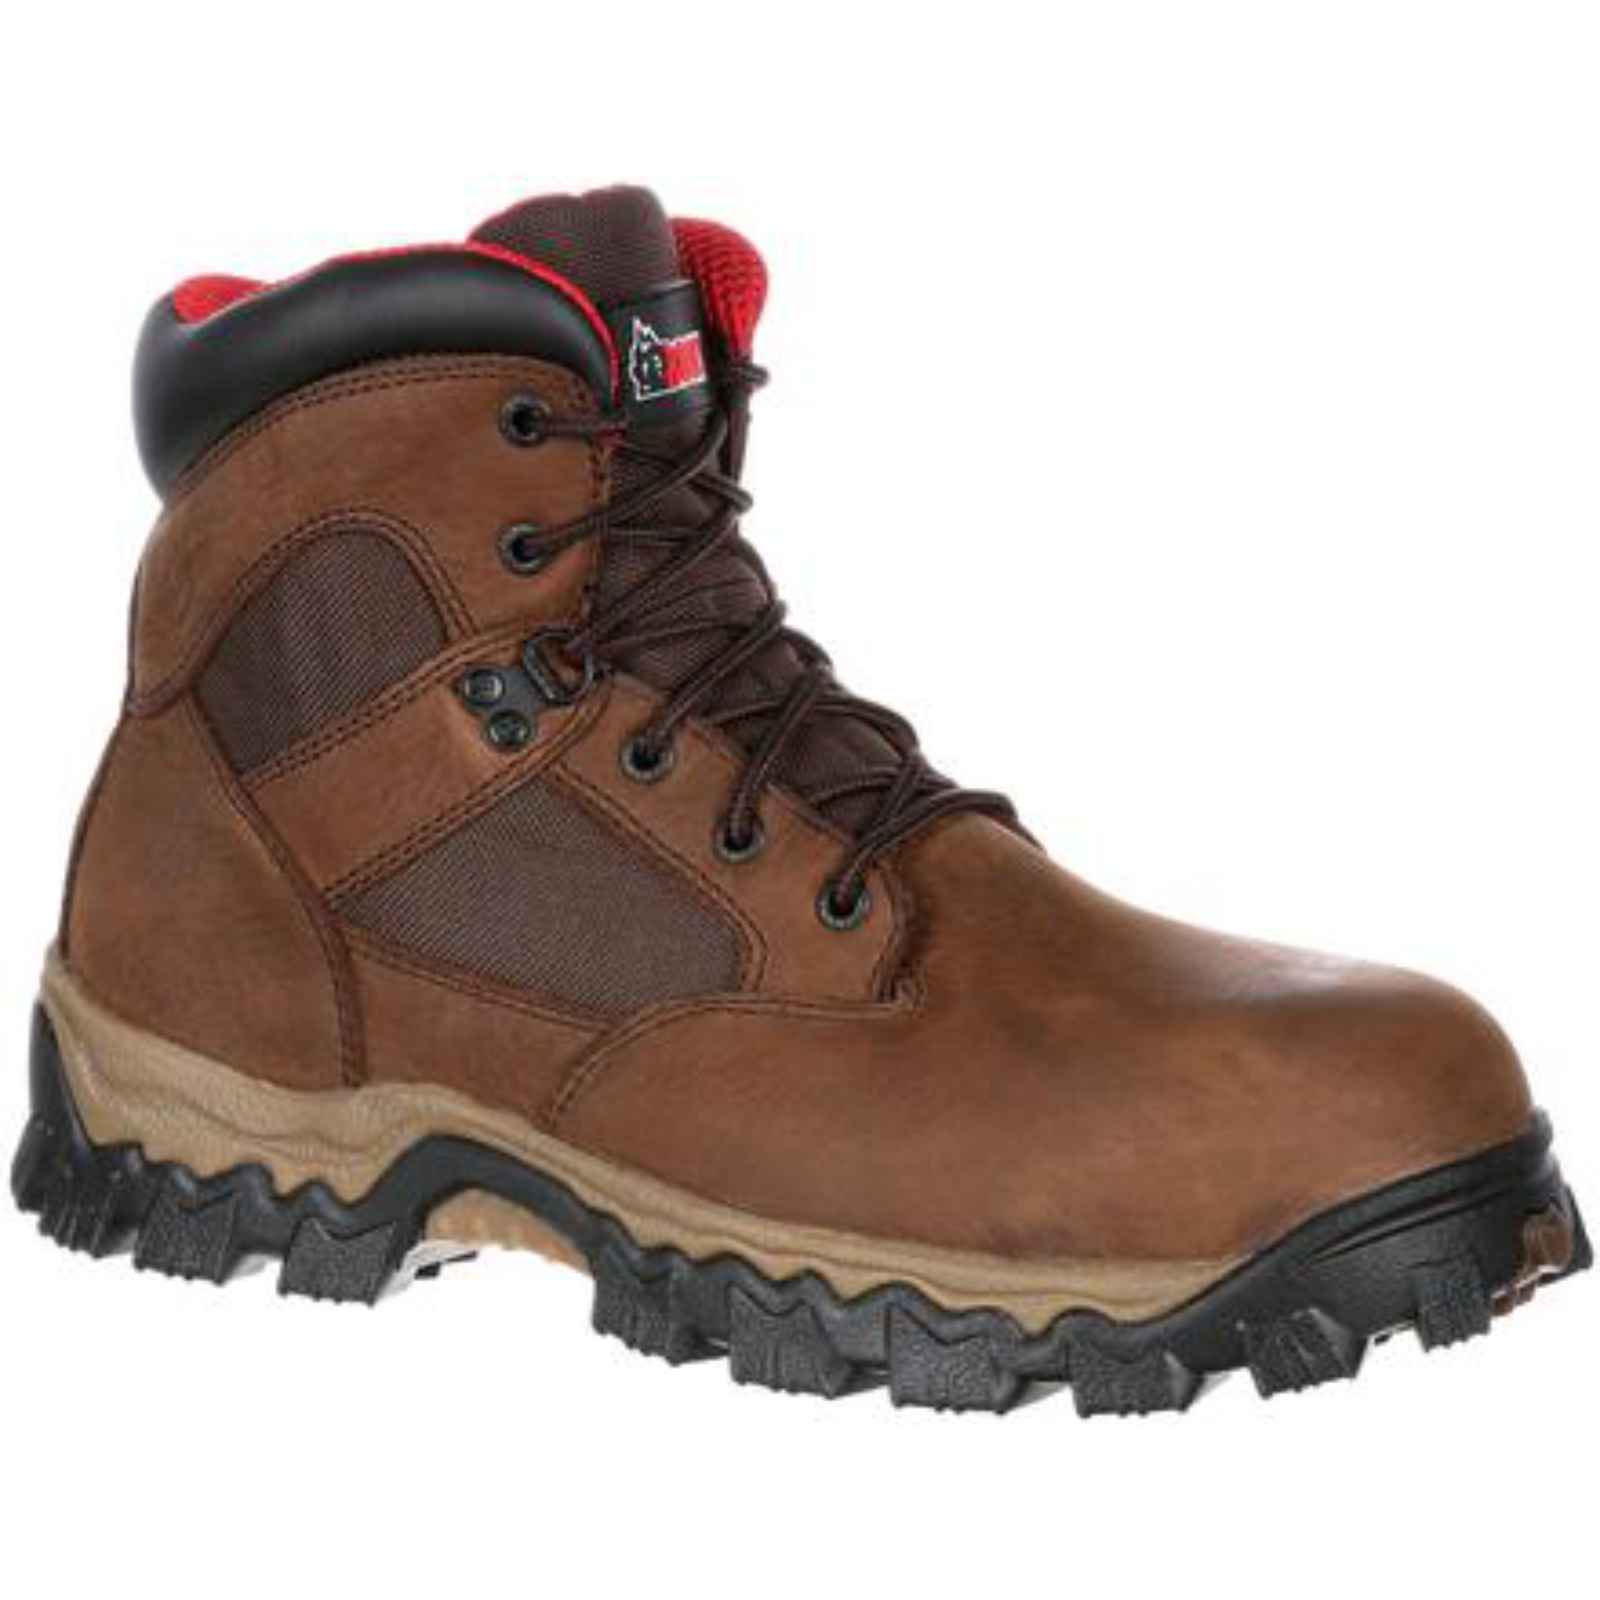 Rocky Alphaforce Composite Toe Waterproof Work Boot RKK0166 by ROCKY BRANDS